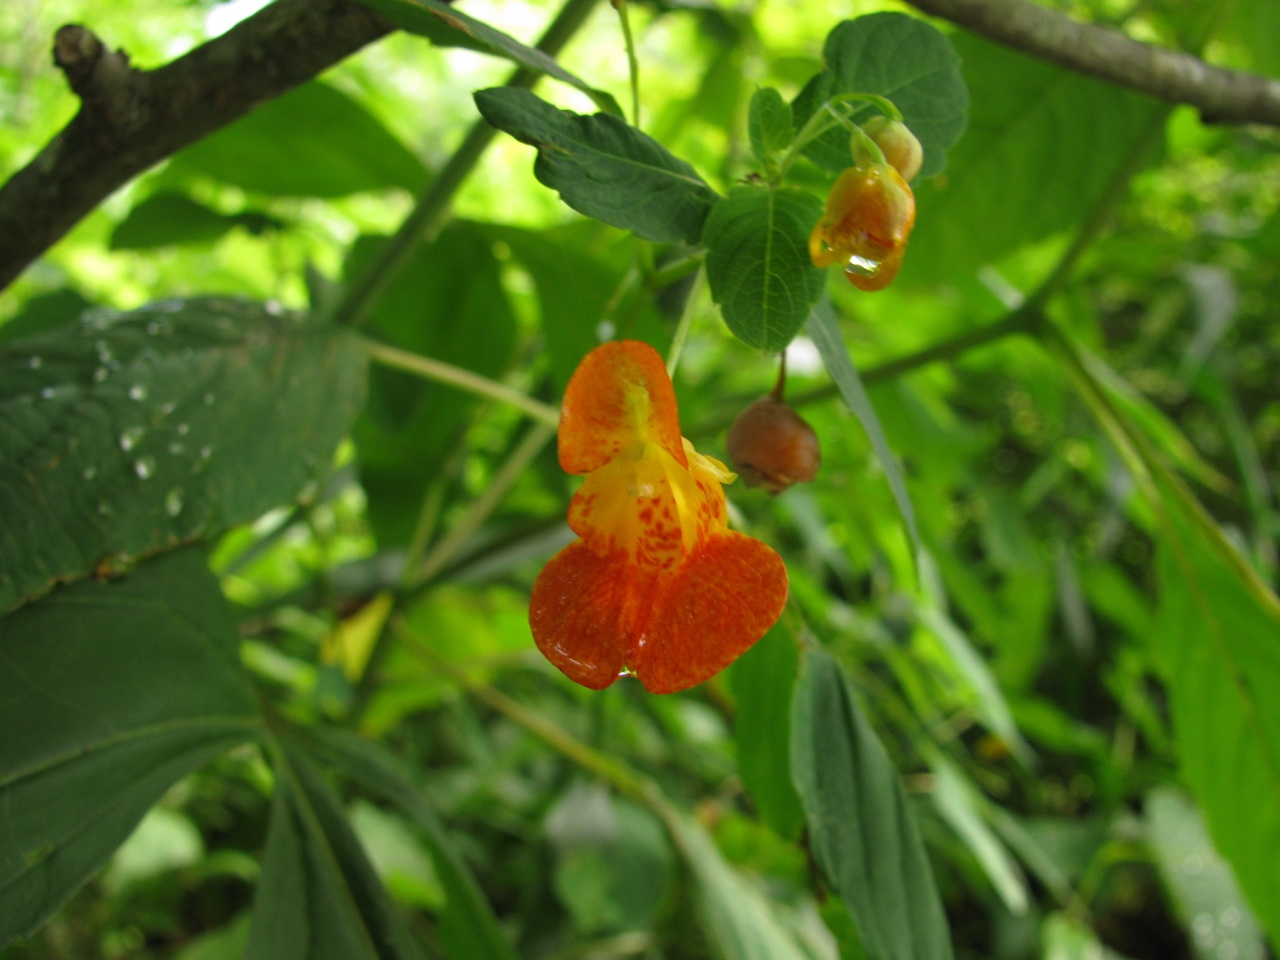 The Scientific Name is Impatiens capensis [=Impatiens biflora]. You will likely hear them called Orange Jewelweed, Orange Touch-me-not, Spotted Touch-me-not. This picture shows the Orange-colored flowers and buds of Impatiens capensis [=Impatiens biflora]